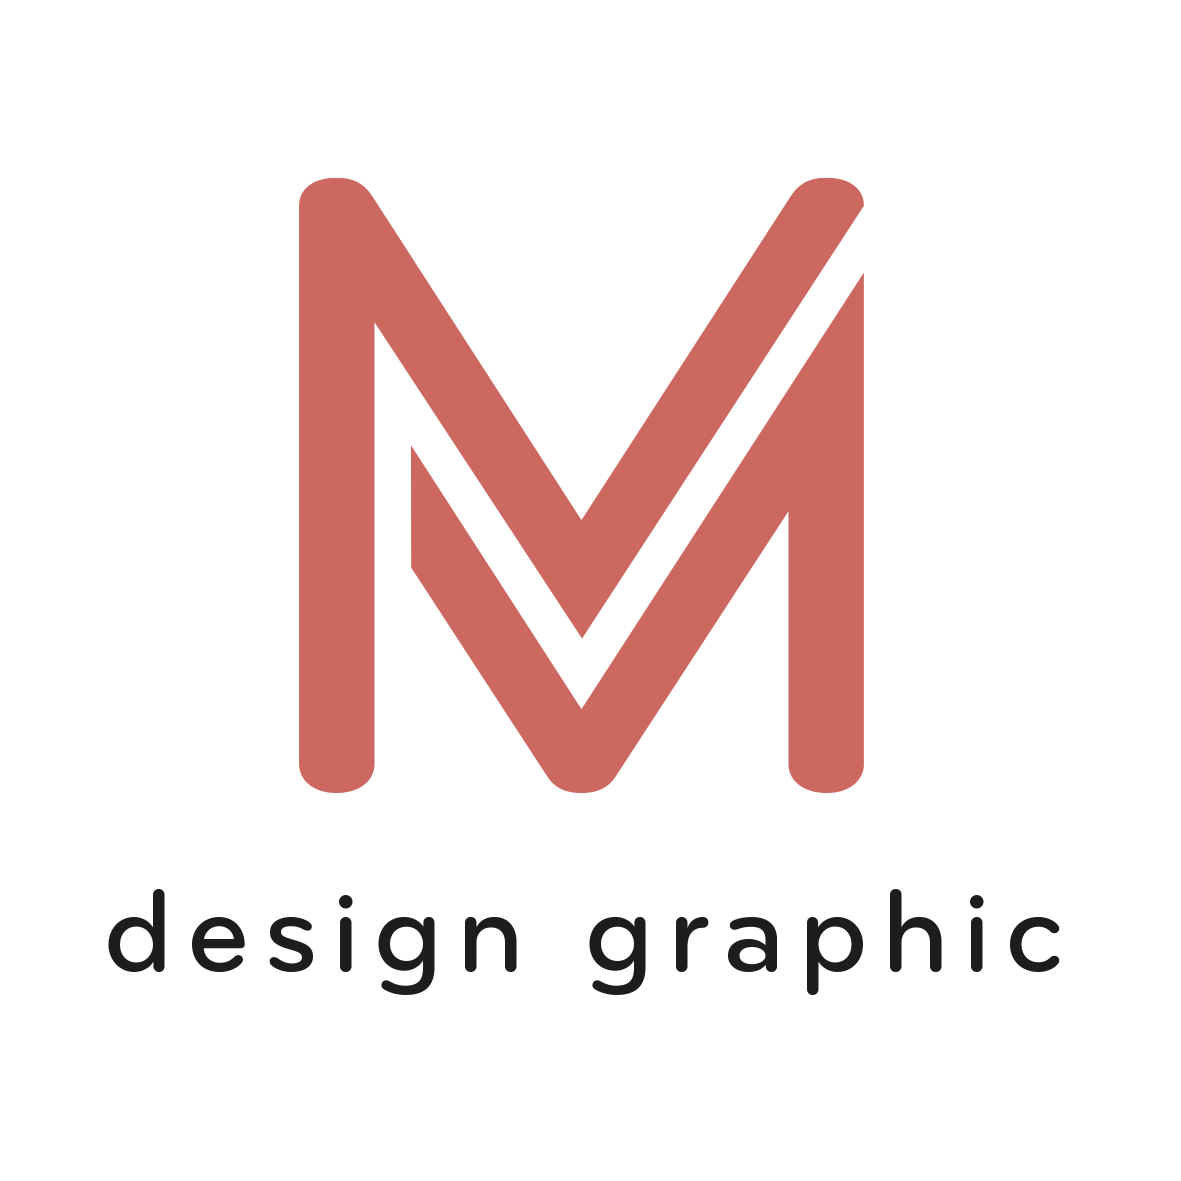 MM design graphic